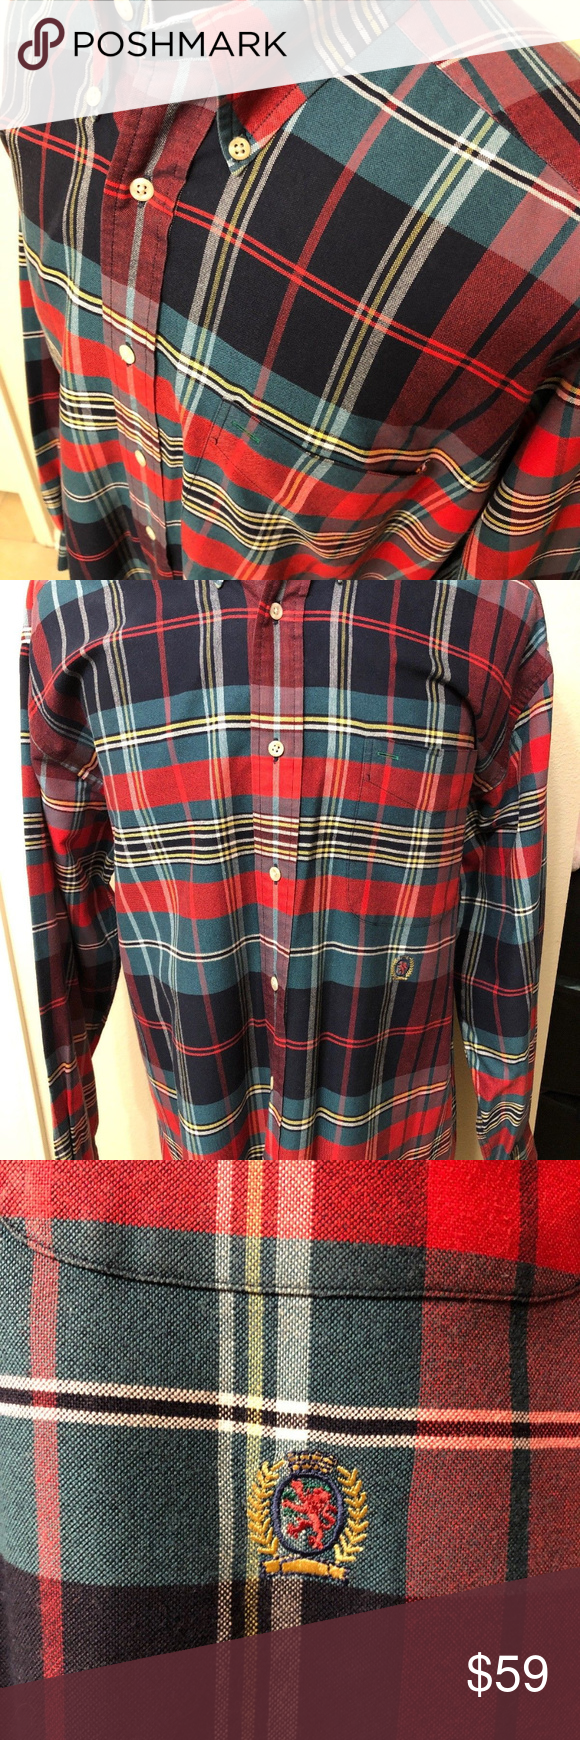 bdf7d076a vintage tommy hilfiger shirt large check plaid vintage tommy hilfiger men's  shirt large check plaid red